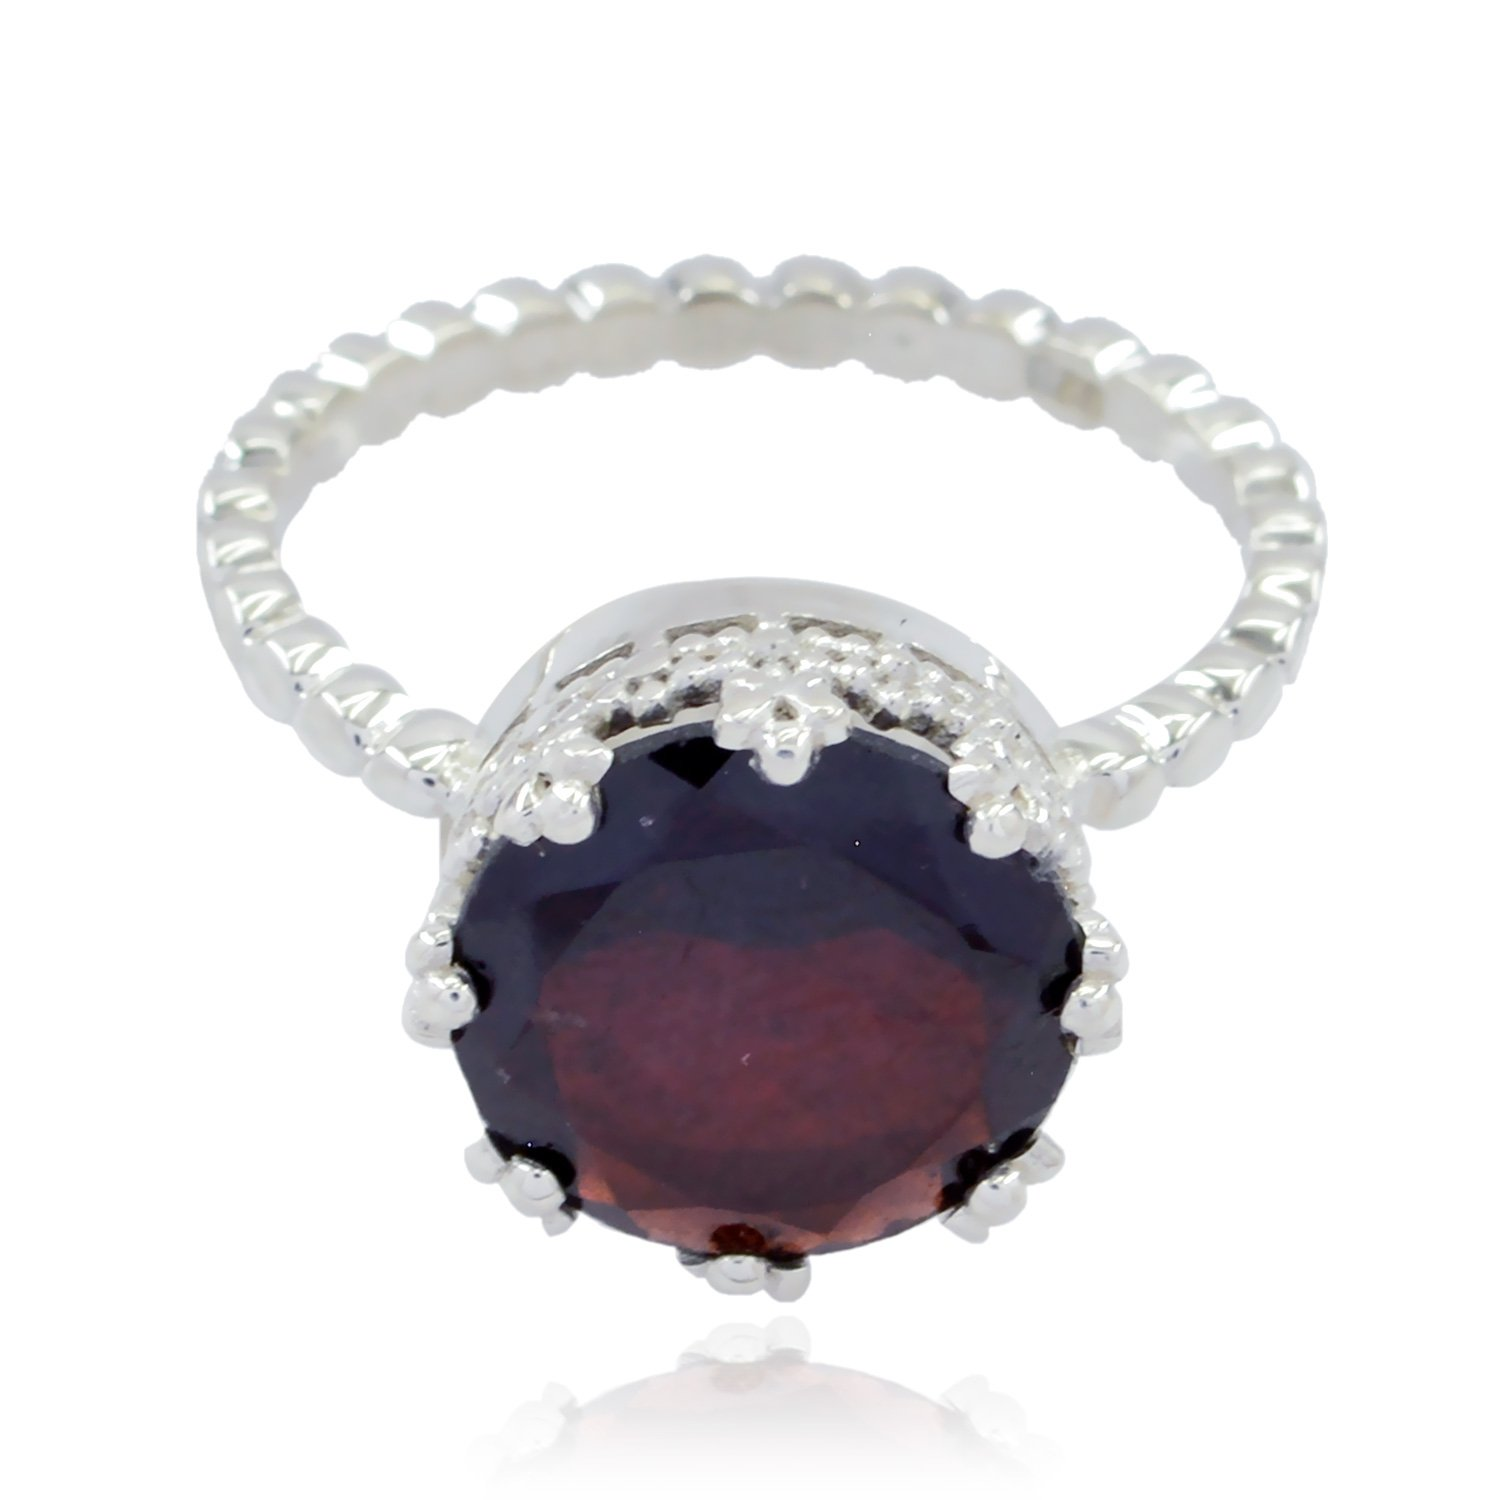 Lucky Gemstone Round Faceted Garnets Ring - Fashion Silber Red Garnets Lucky Gemstone Ring - jents Jewelry Good Item Gift for Girlfriend Bohemian -US 14.5